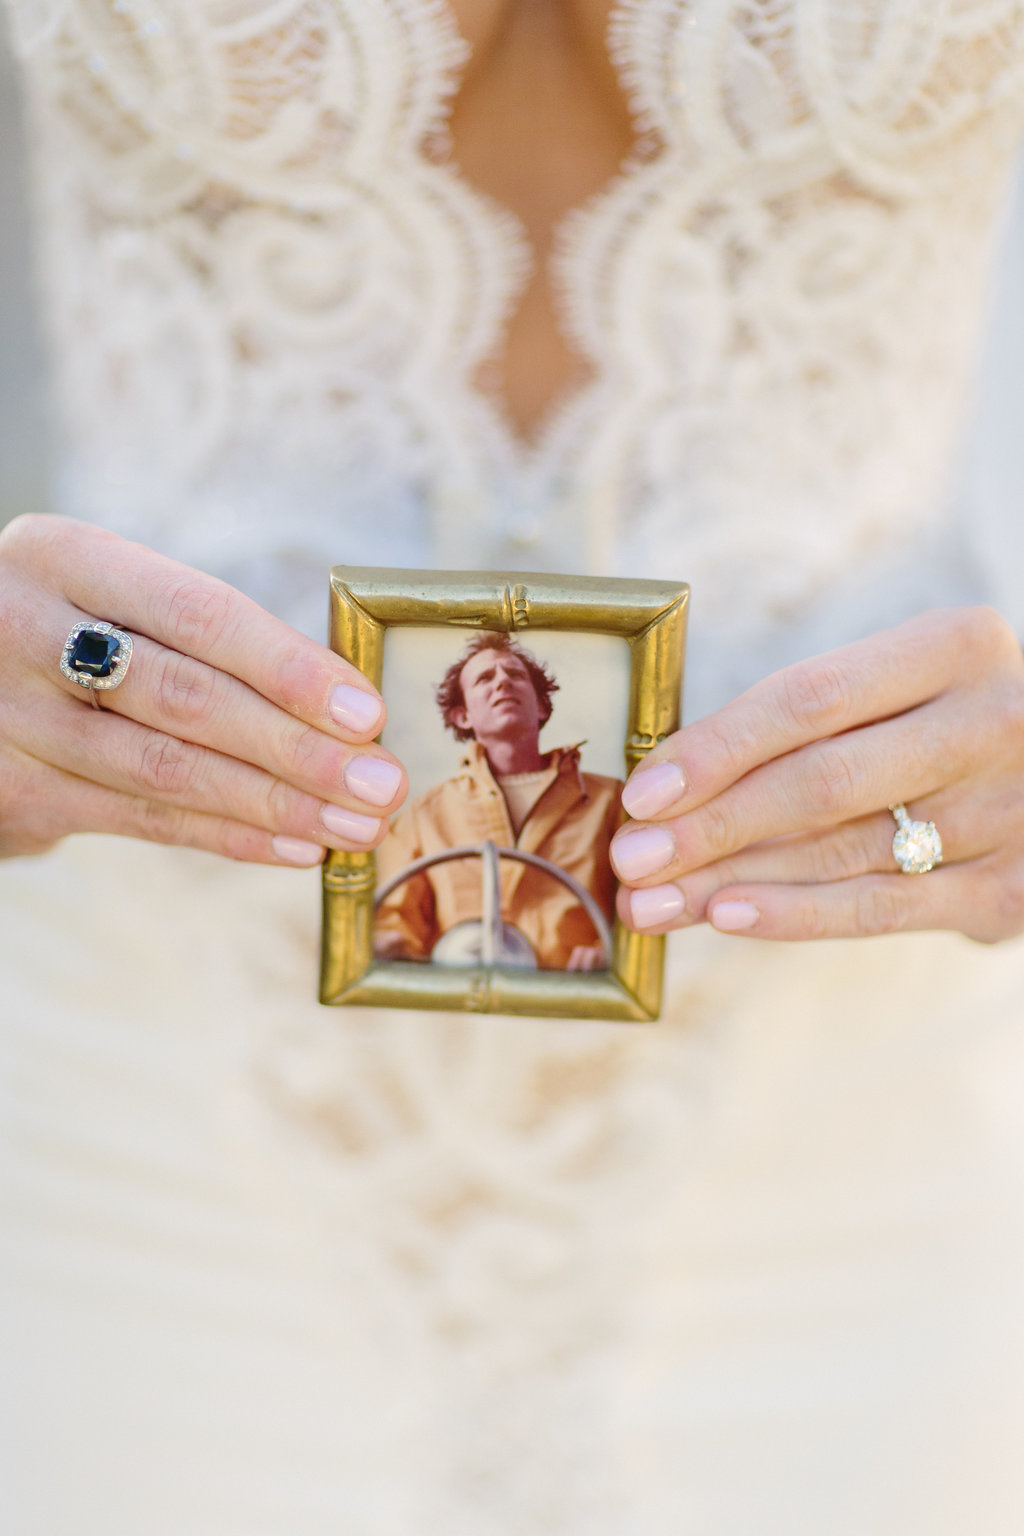 LCphoto-AB-elope-preview-14.jpg